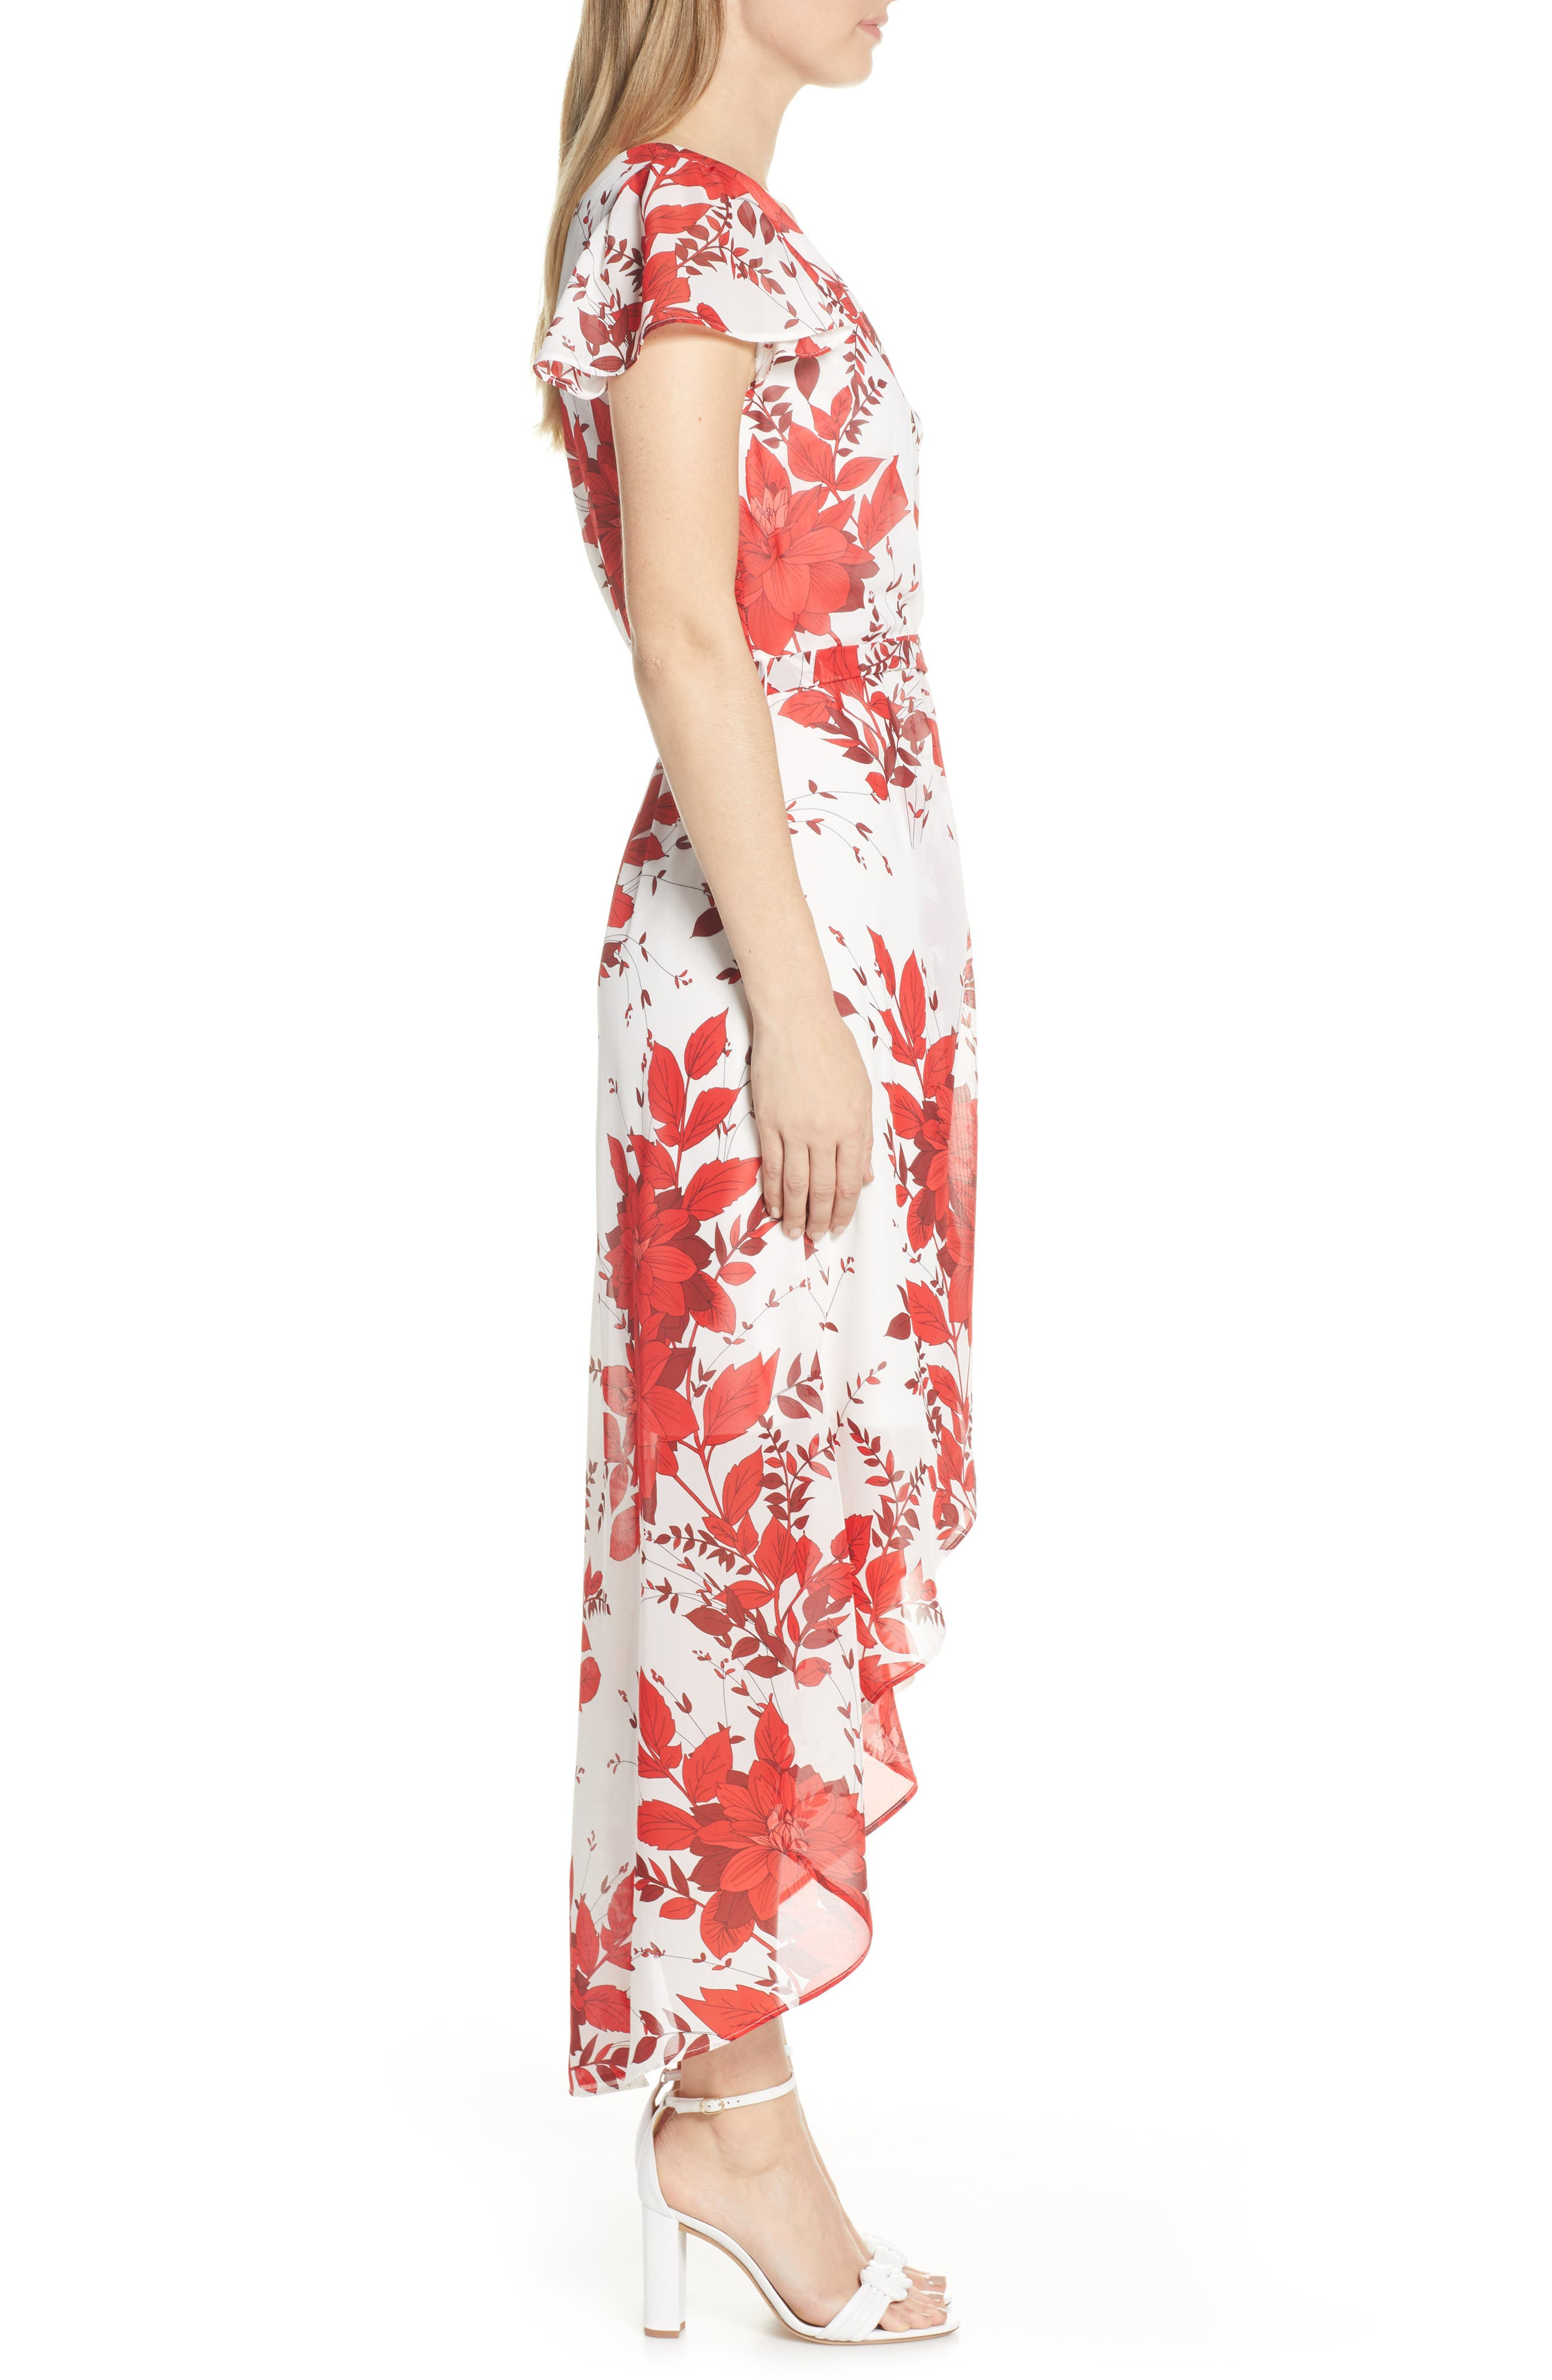 JULIA JORDAN, High/Low Floral Wrap Dress, Alternate thumbnail 4, color, IVORY/ RED